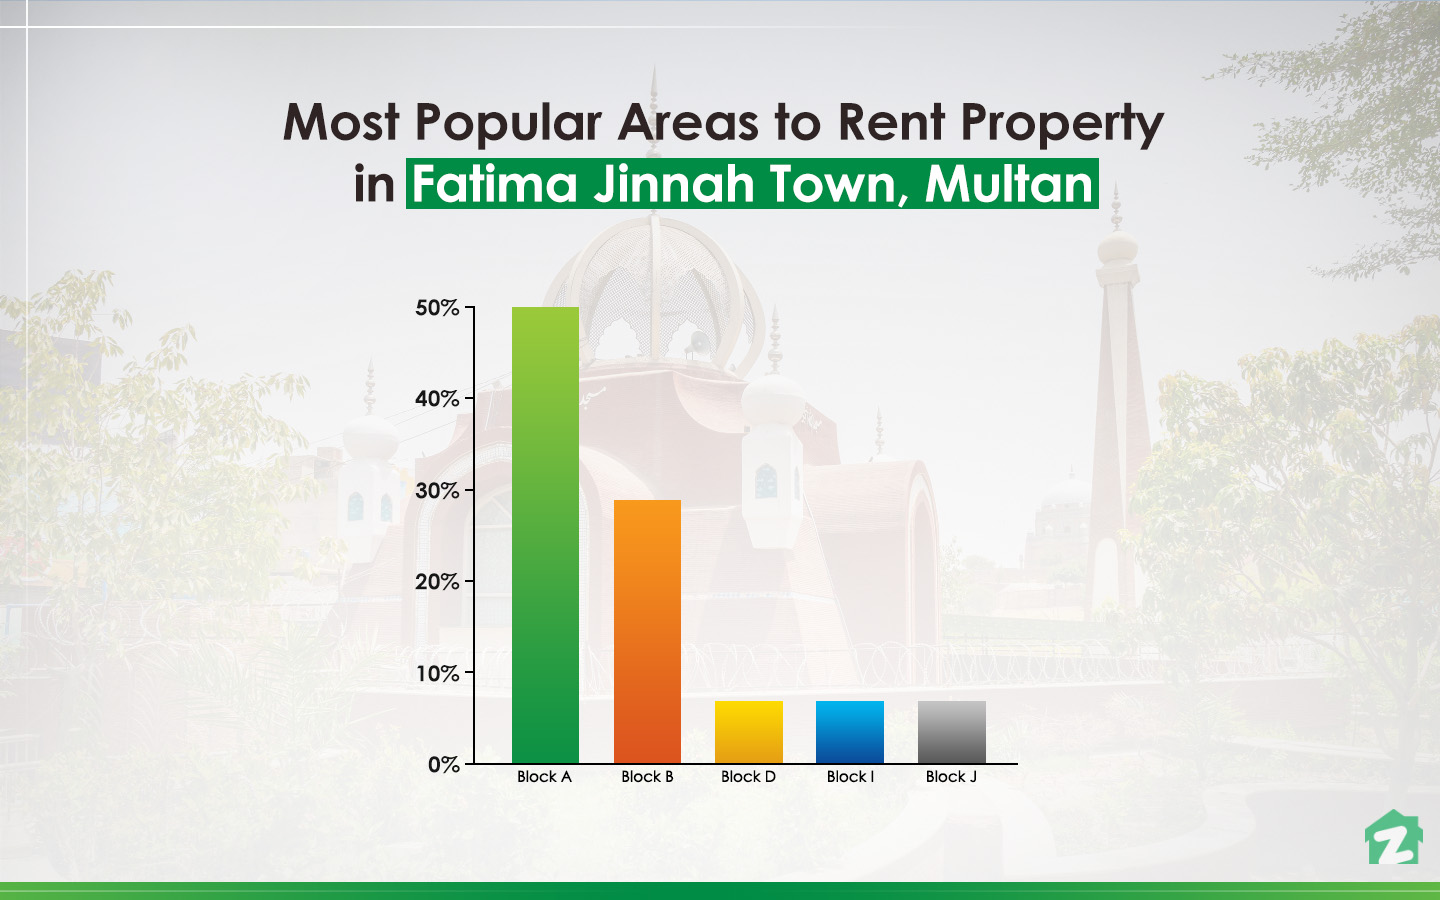 Most Popular Areas to rent a Property in Fatima Jinnah Town, Multan